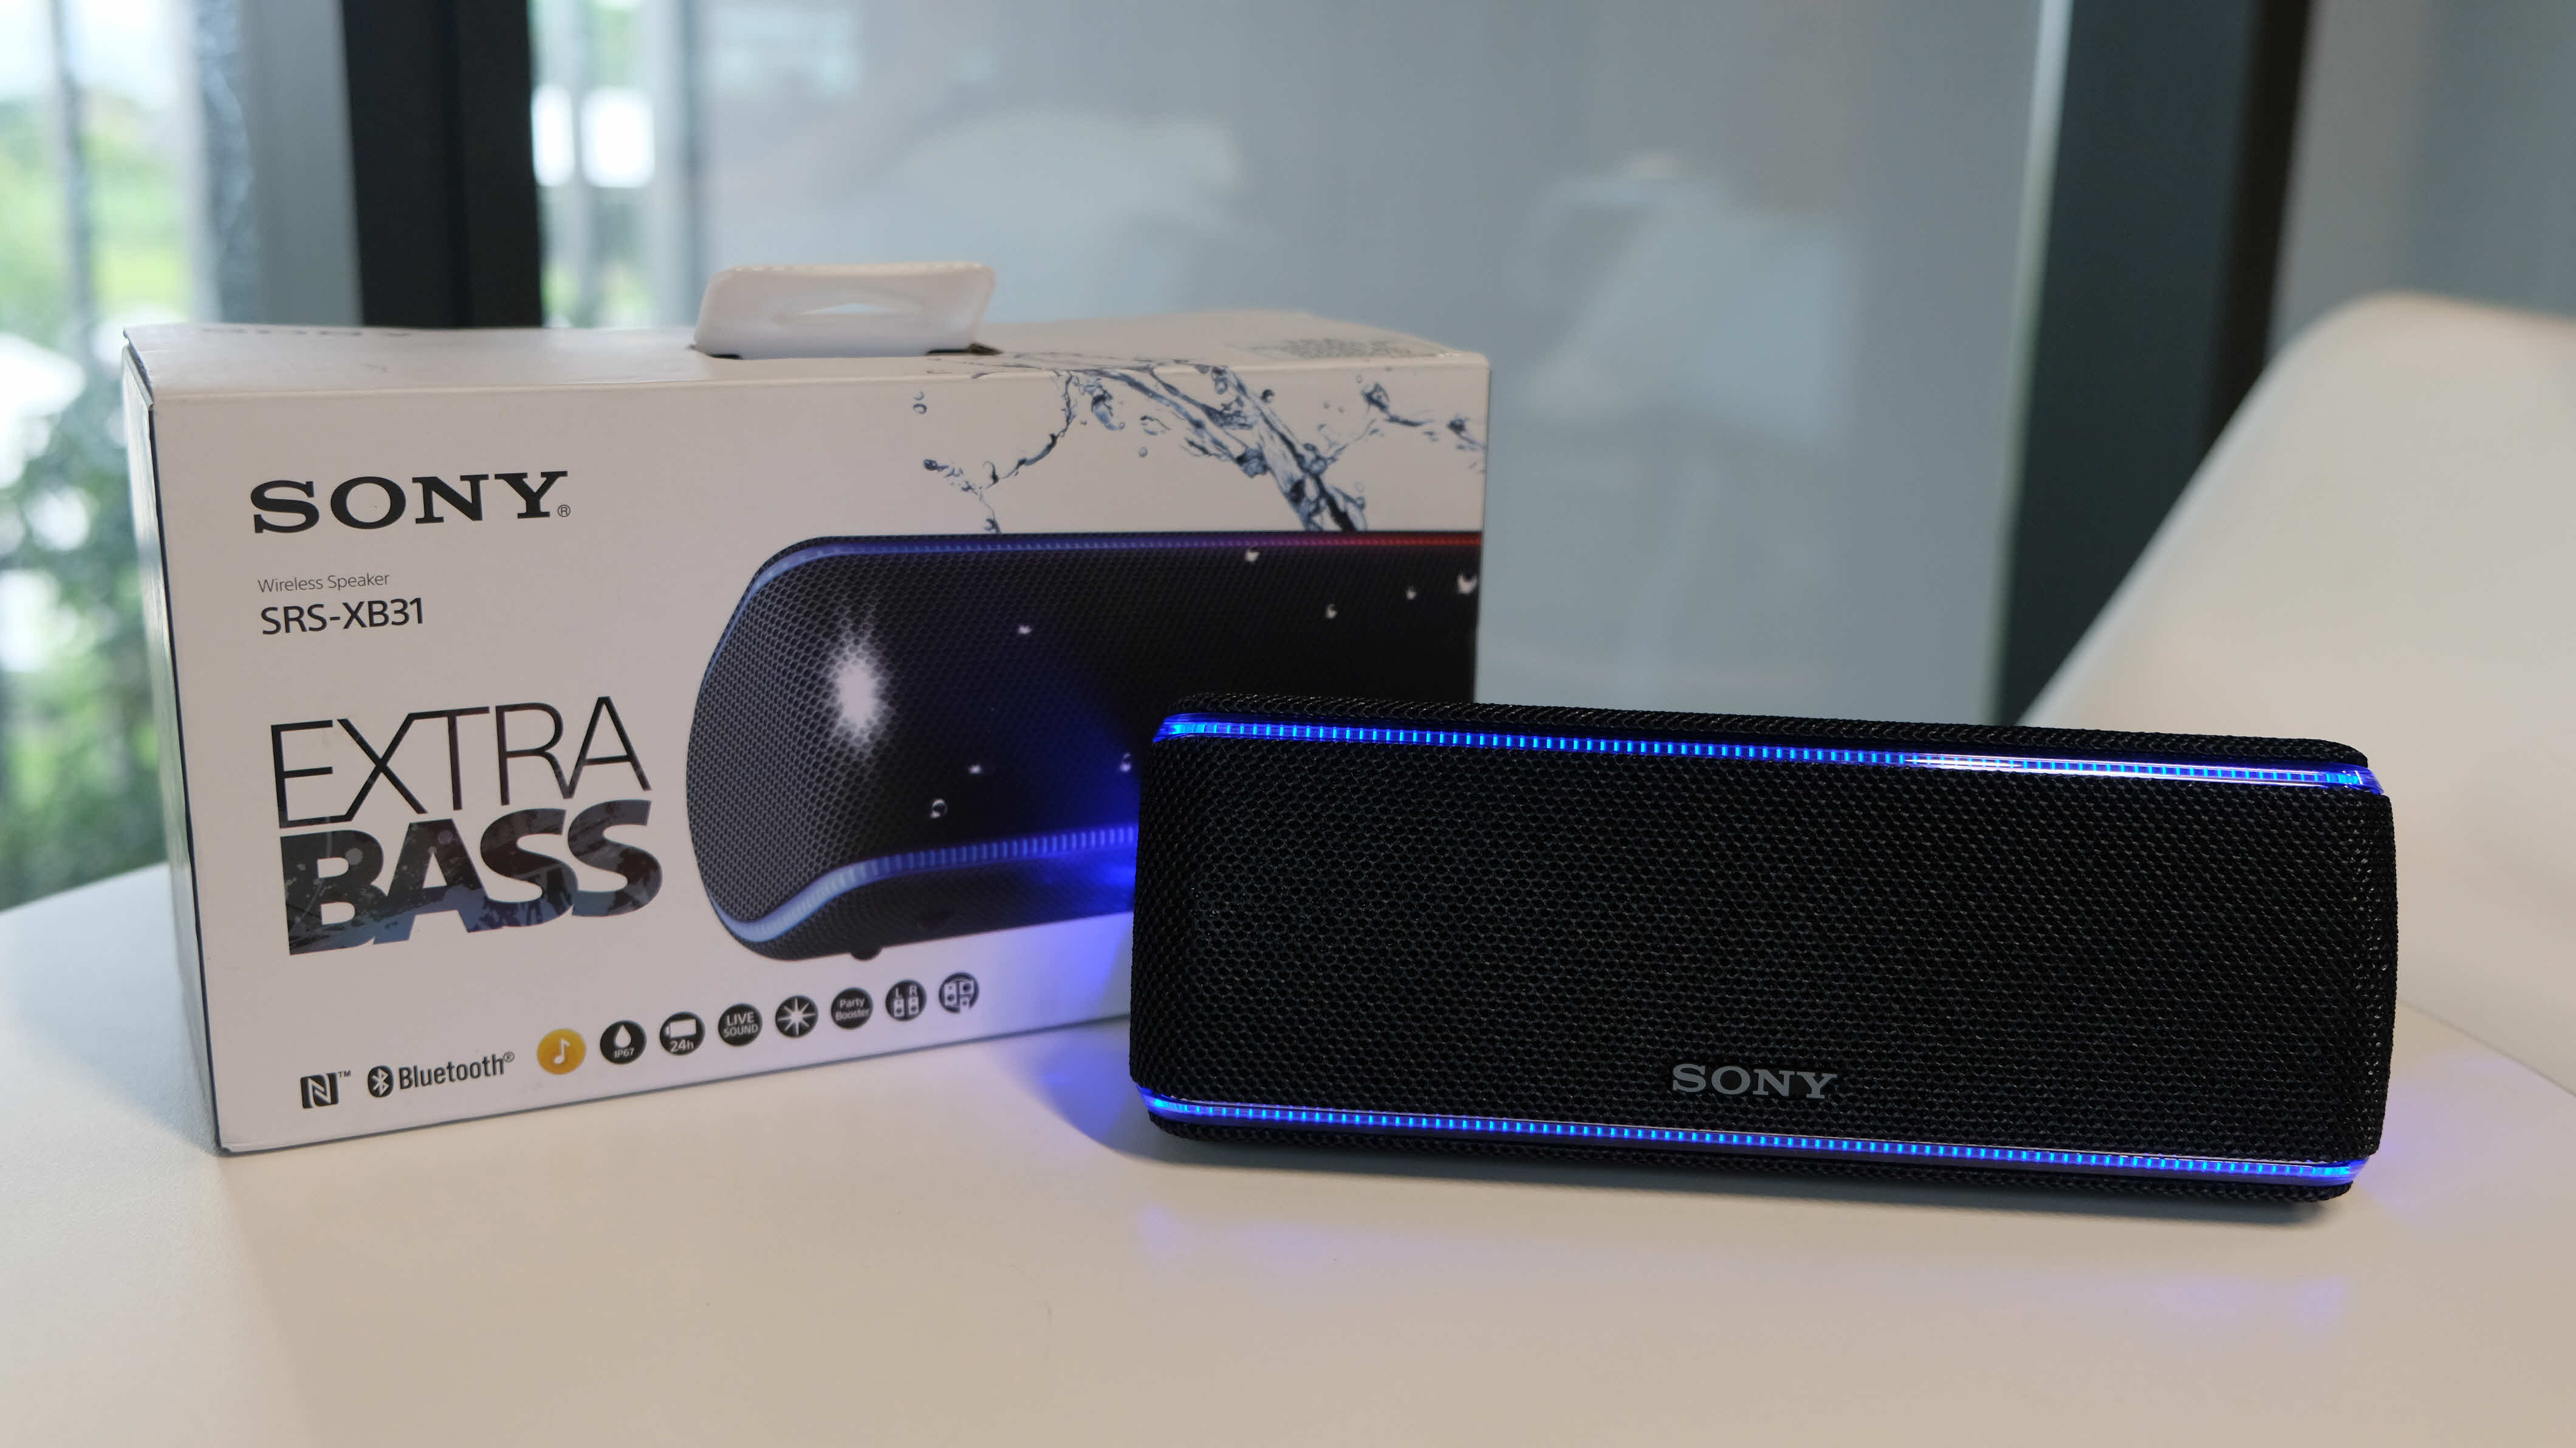 Sony Srs Xb21 Sony Srs Xb31 Blutooth Speaker Review Advertorial 003